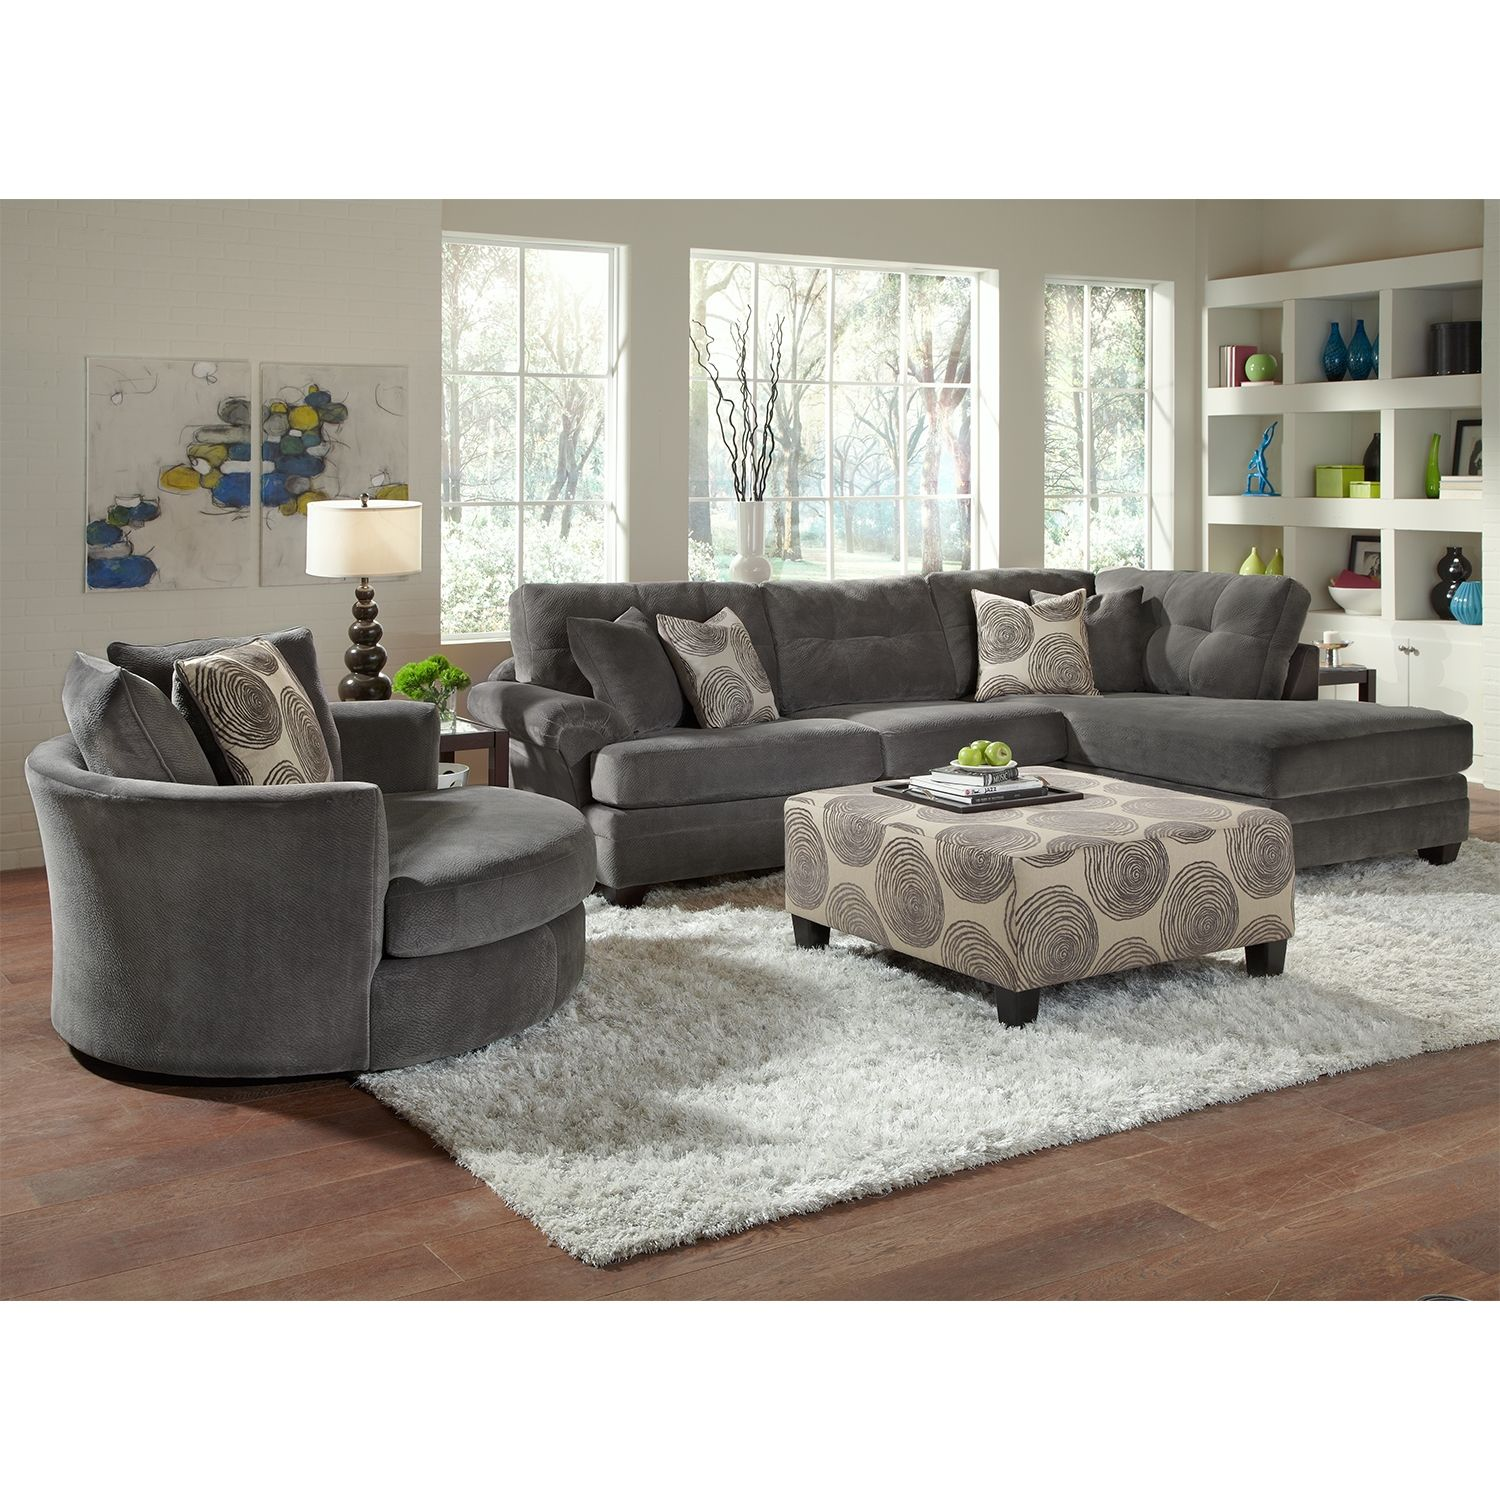 Catalina Gray Upholstery 2 Pc Sectional Furniture